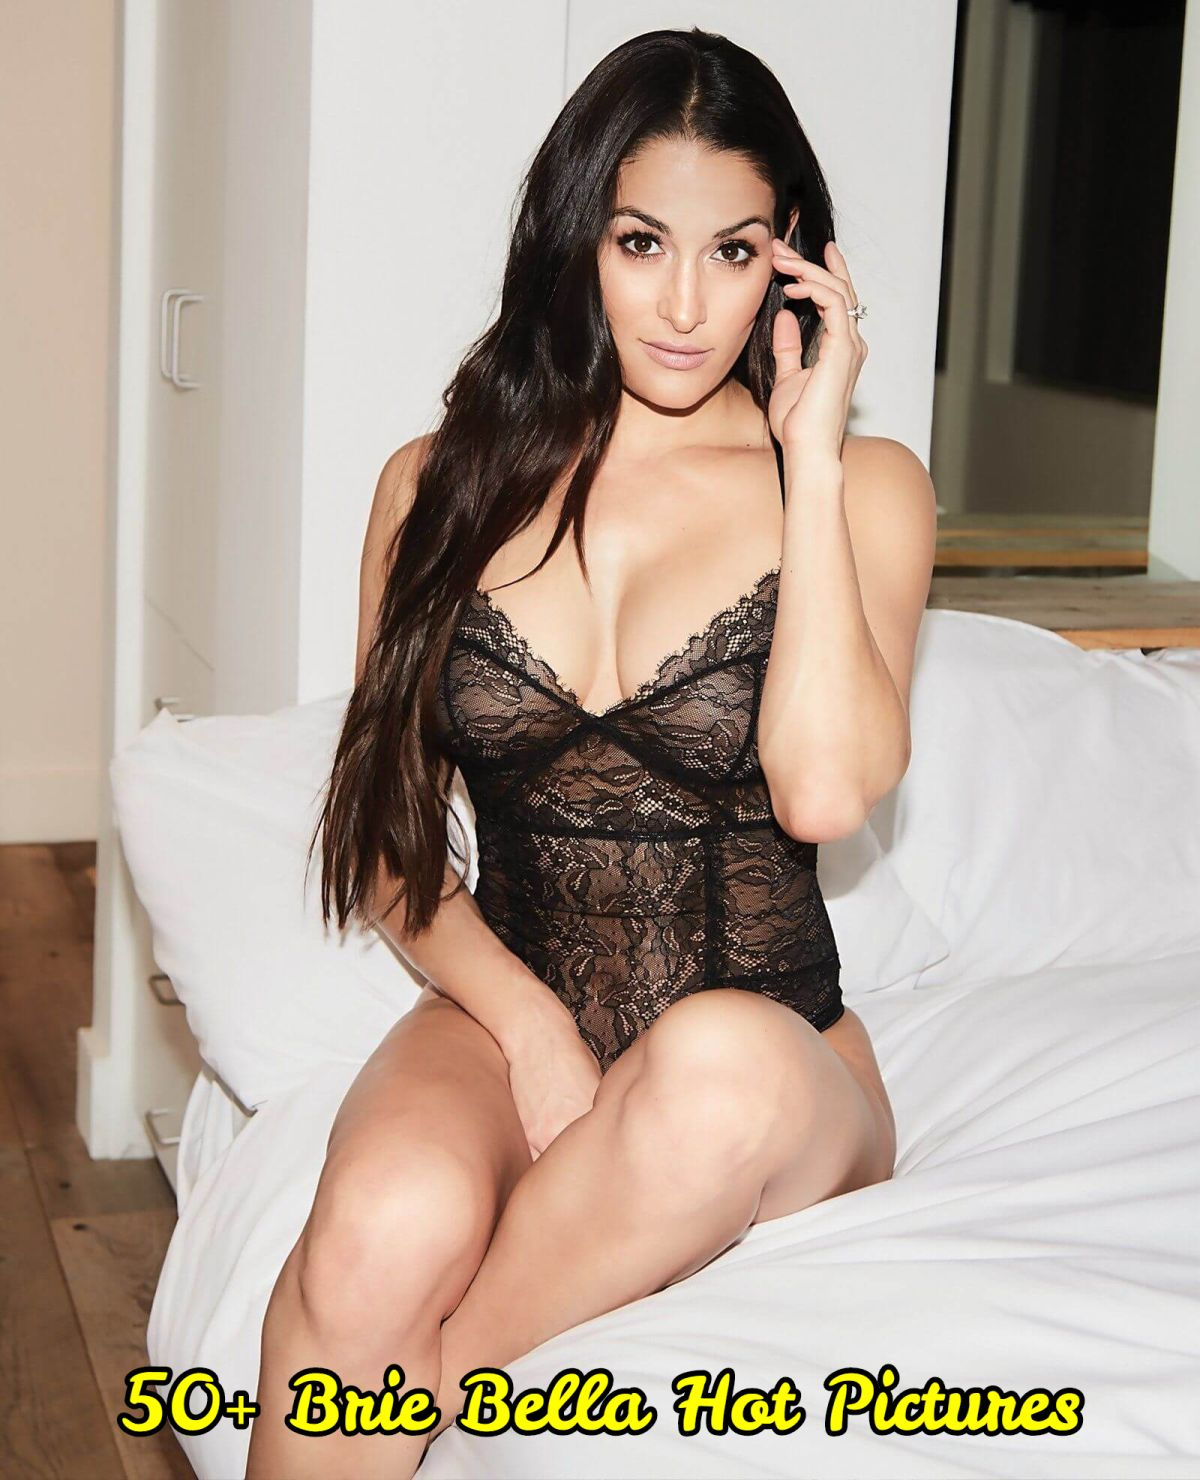 Brie Bella sexy look pic